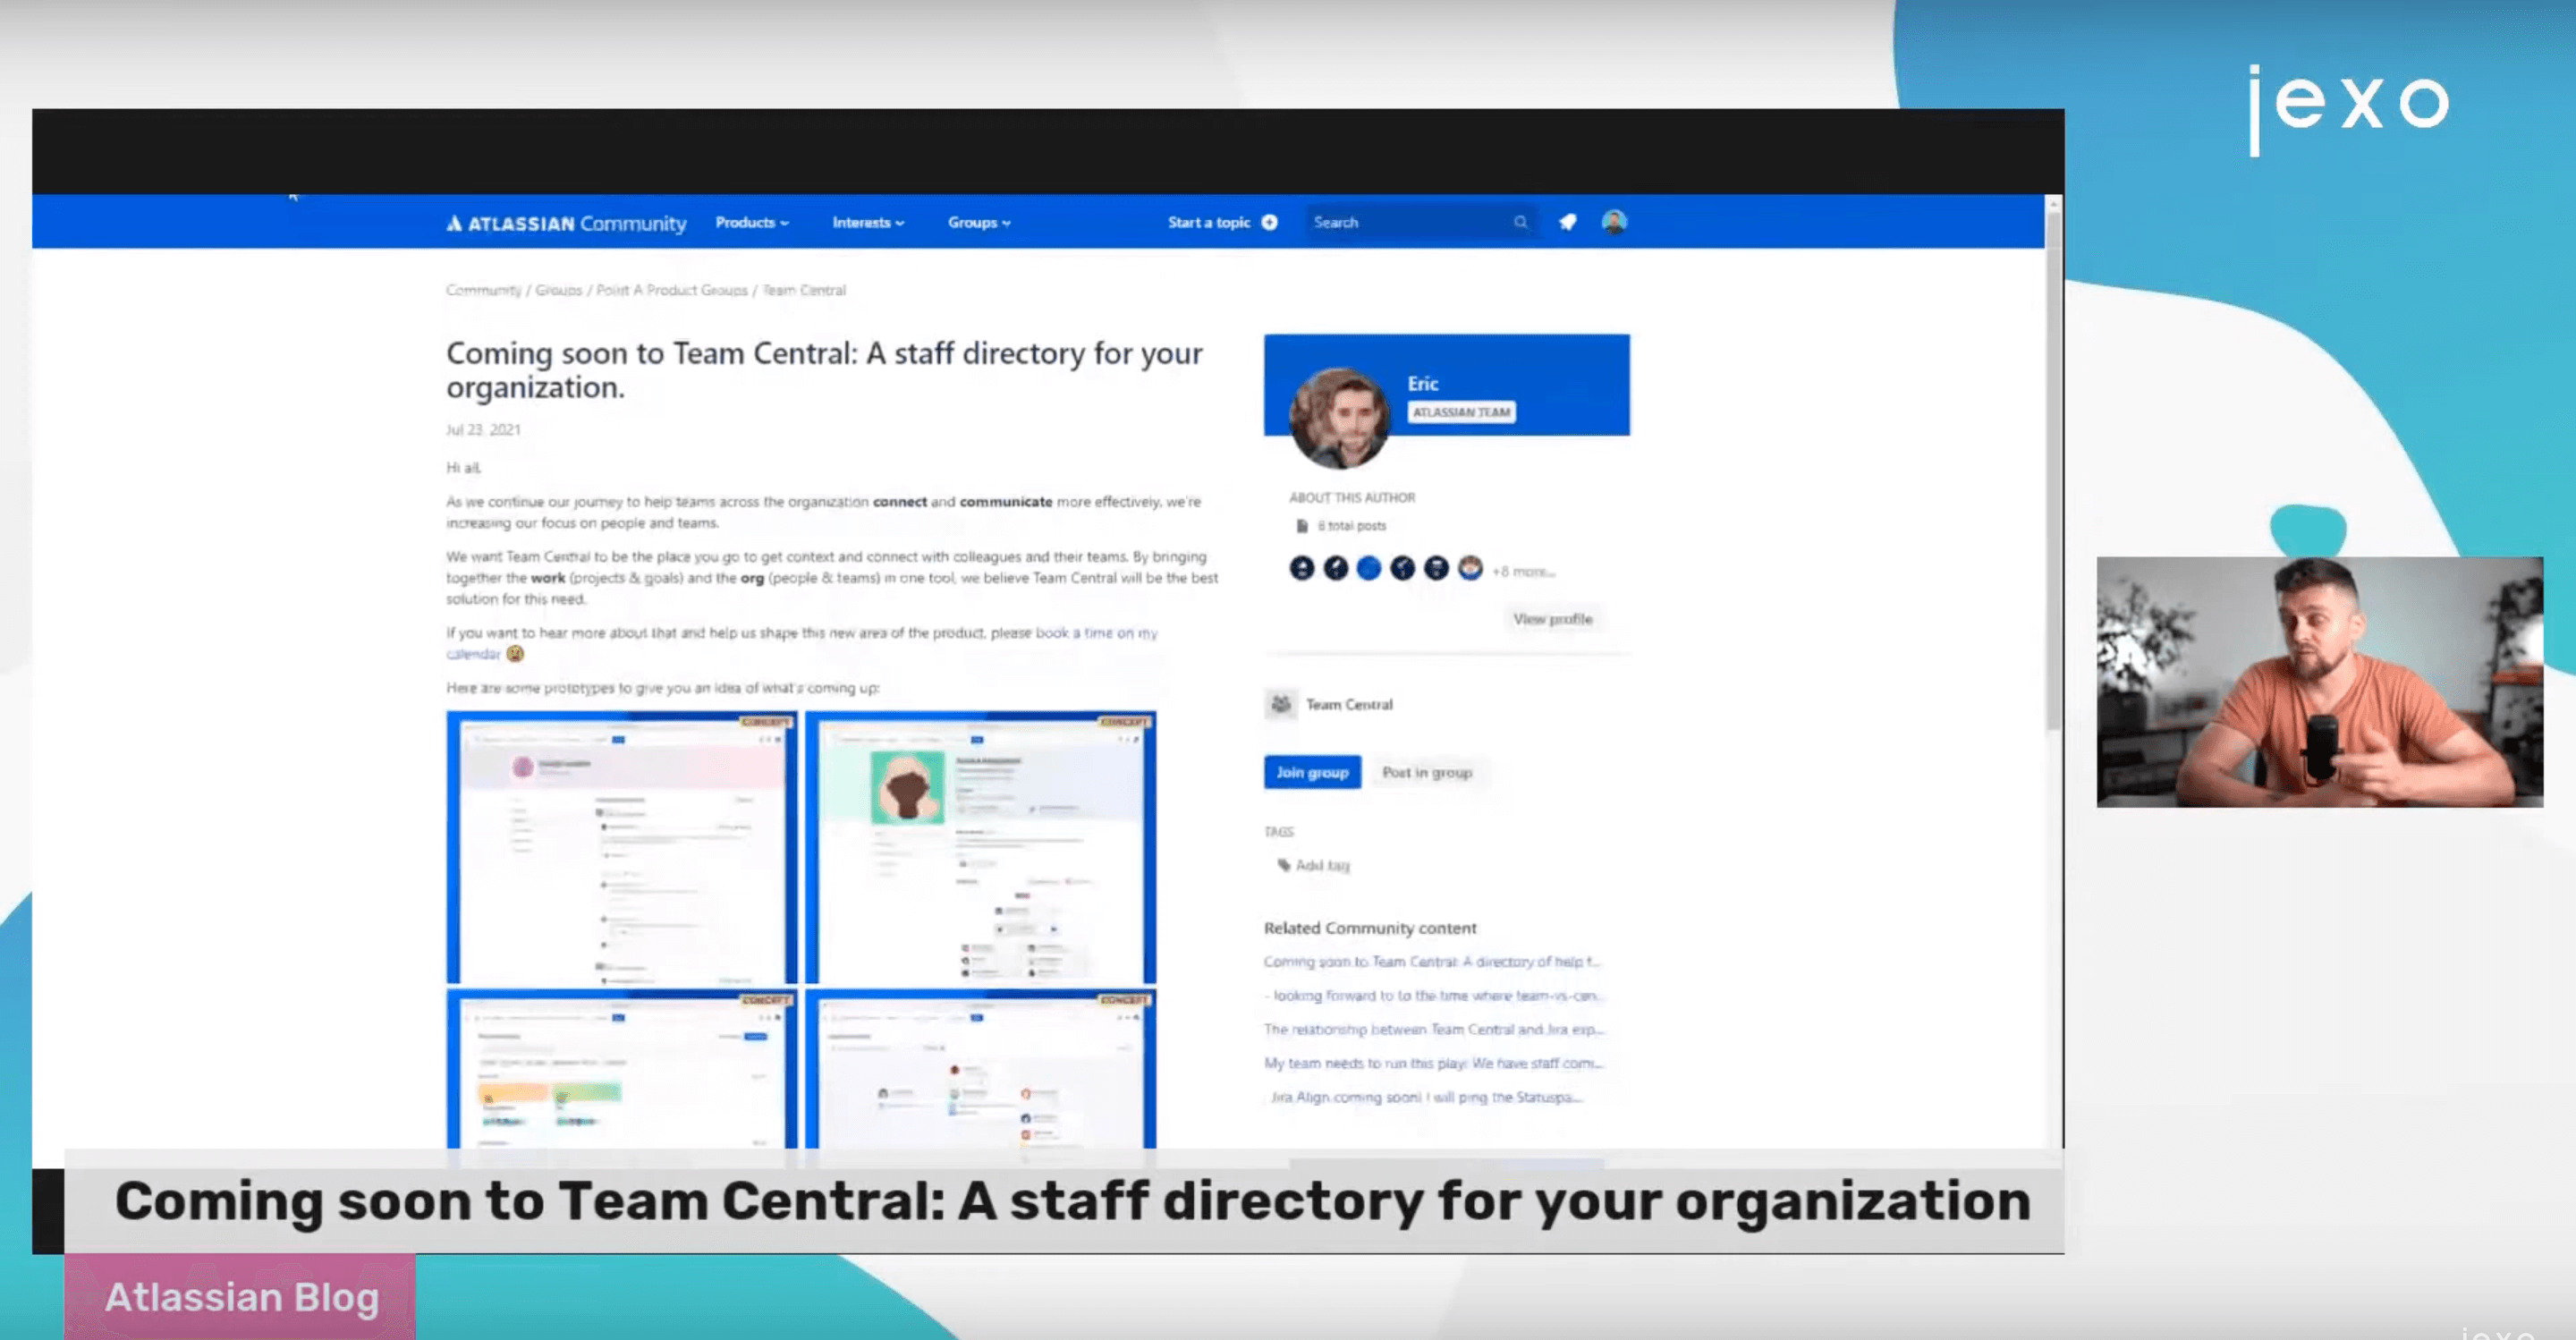 Atlassian News: Team Central announced new feature - Staff directory